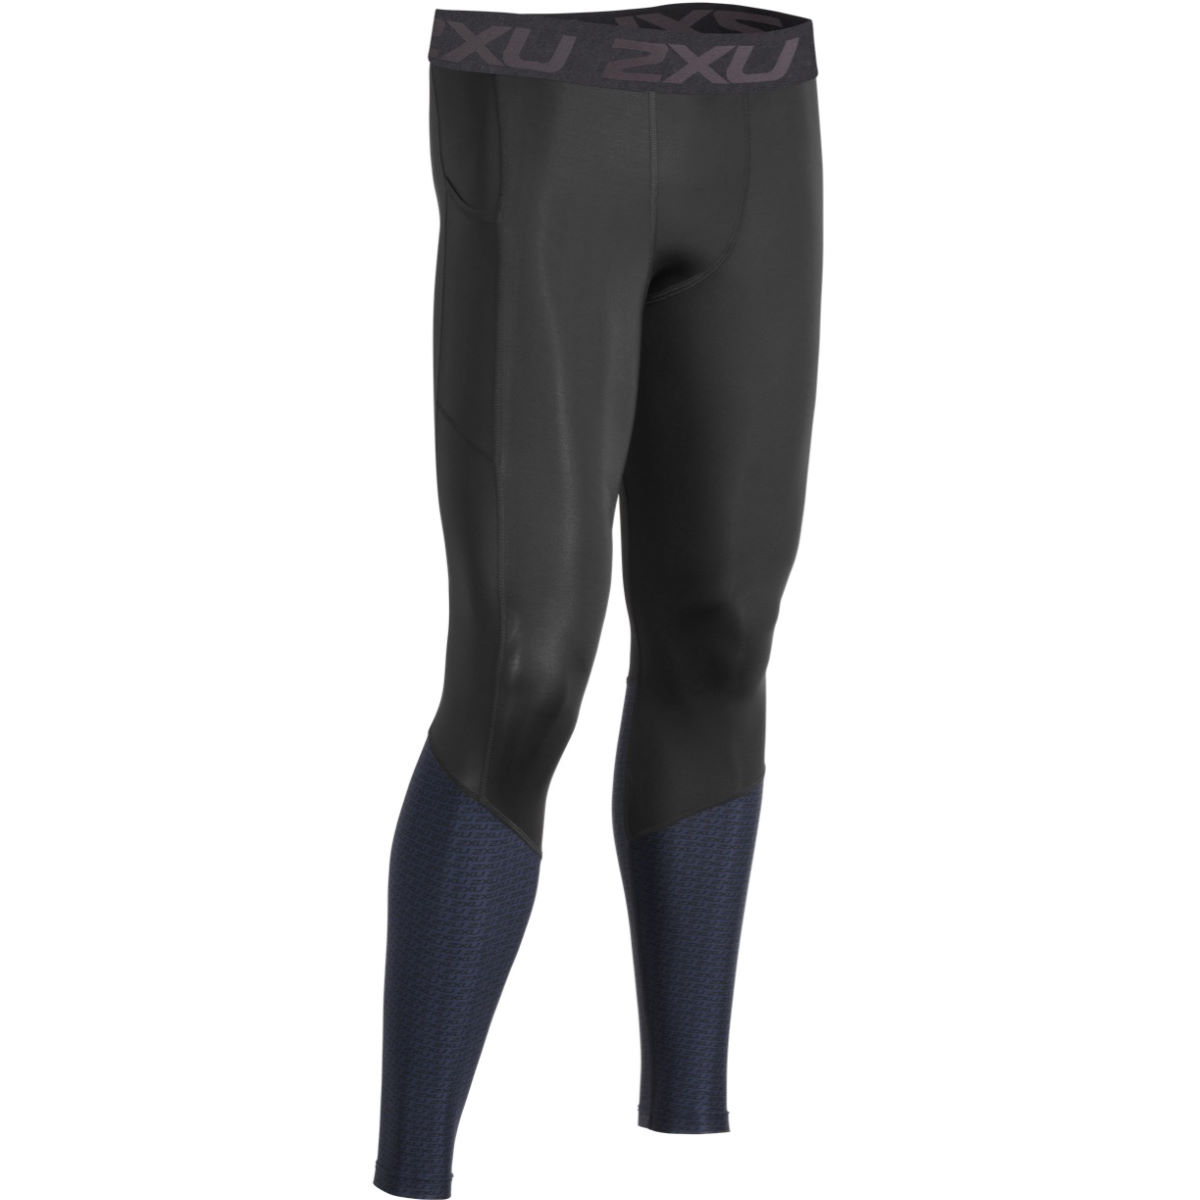 2XU Accelerate Compression Tights with Back Storage - Mallas de compresión